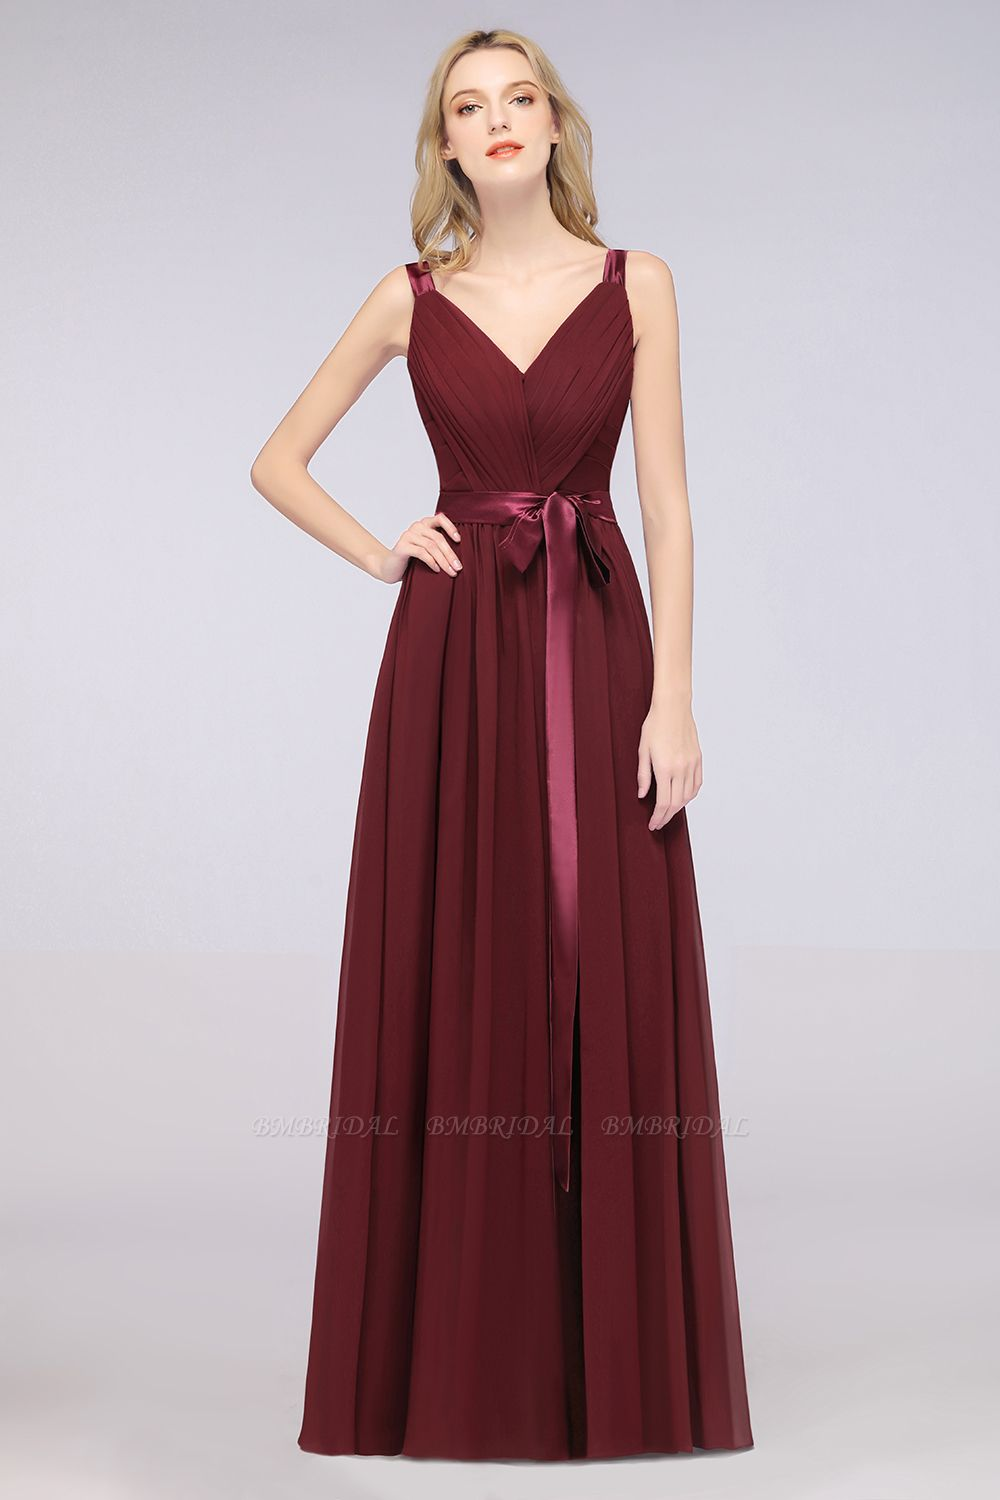 BMbridal Chic V-Neck Straps Ruffle Burgundy Bridesmaid Dresses with Bow Sash